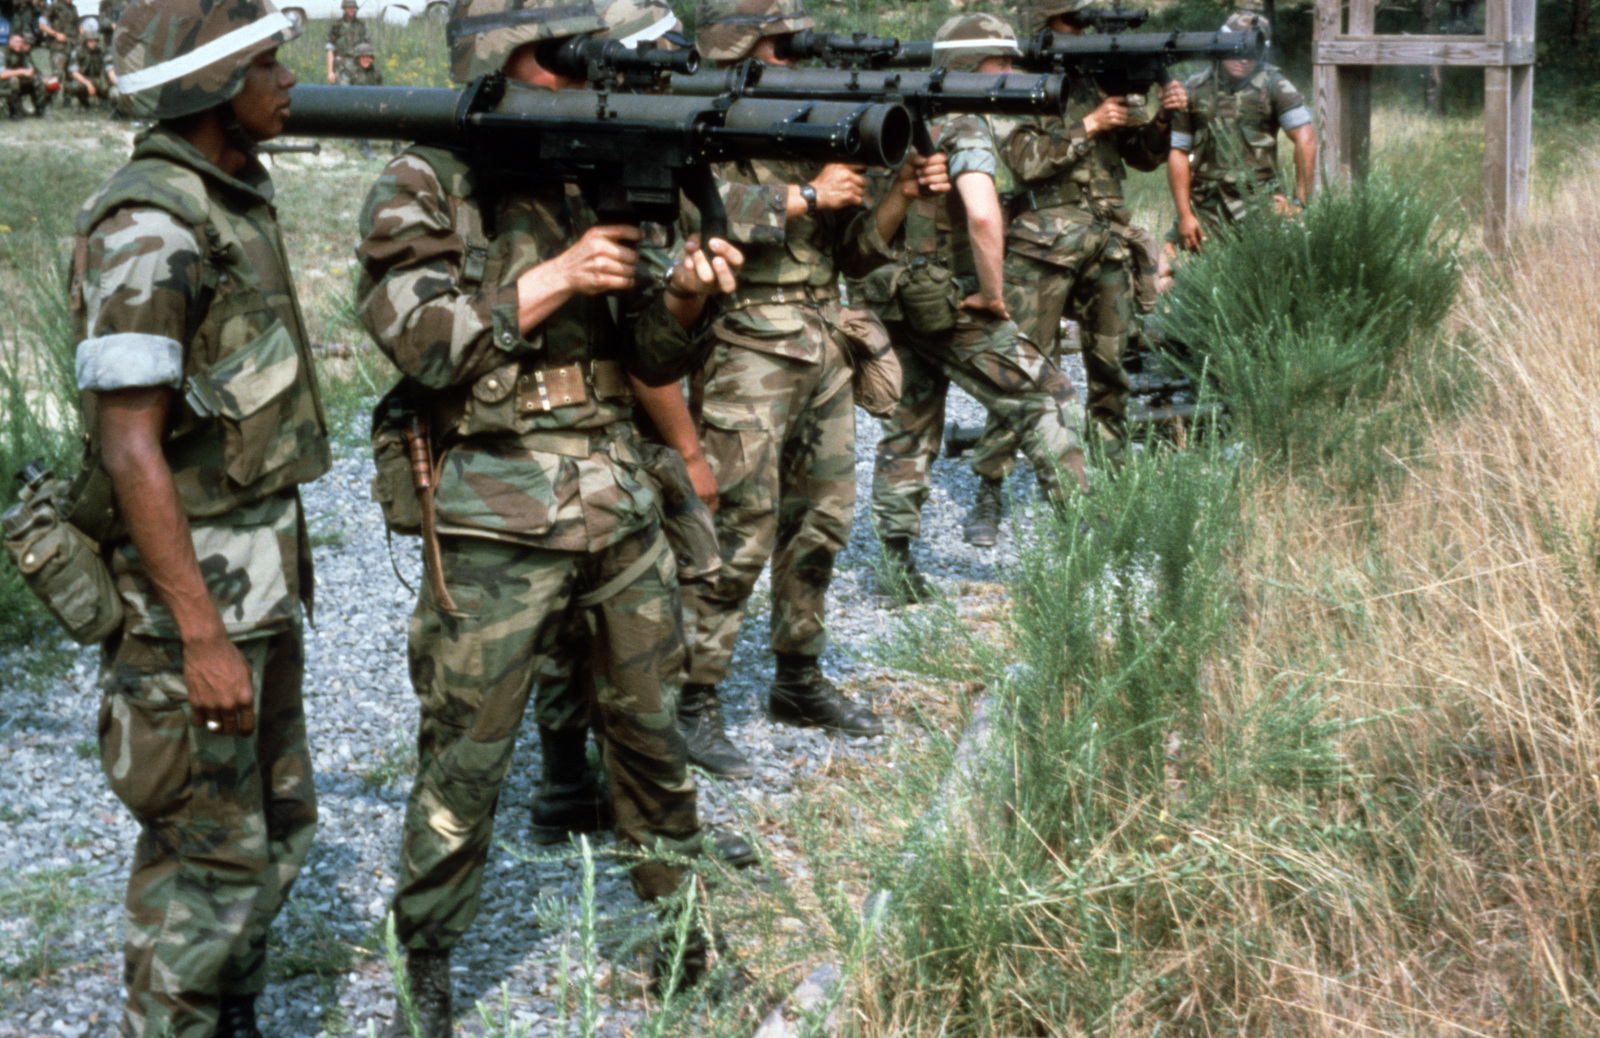 Marines are instructed on the firing of medium anti-tank weapons equipped with sub-caliber training simulators